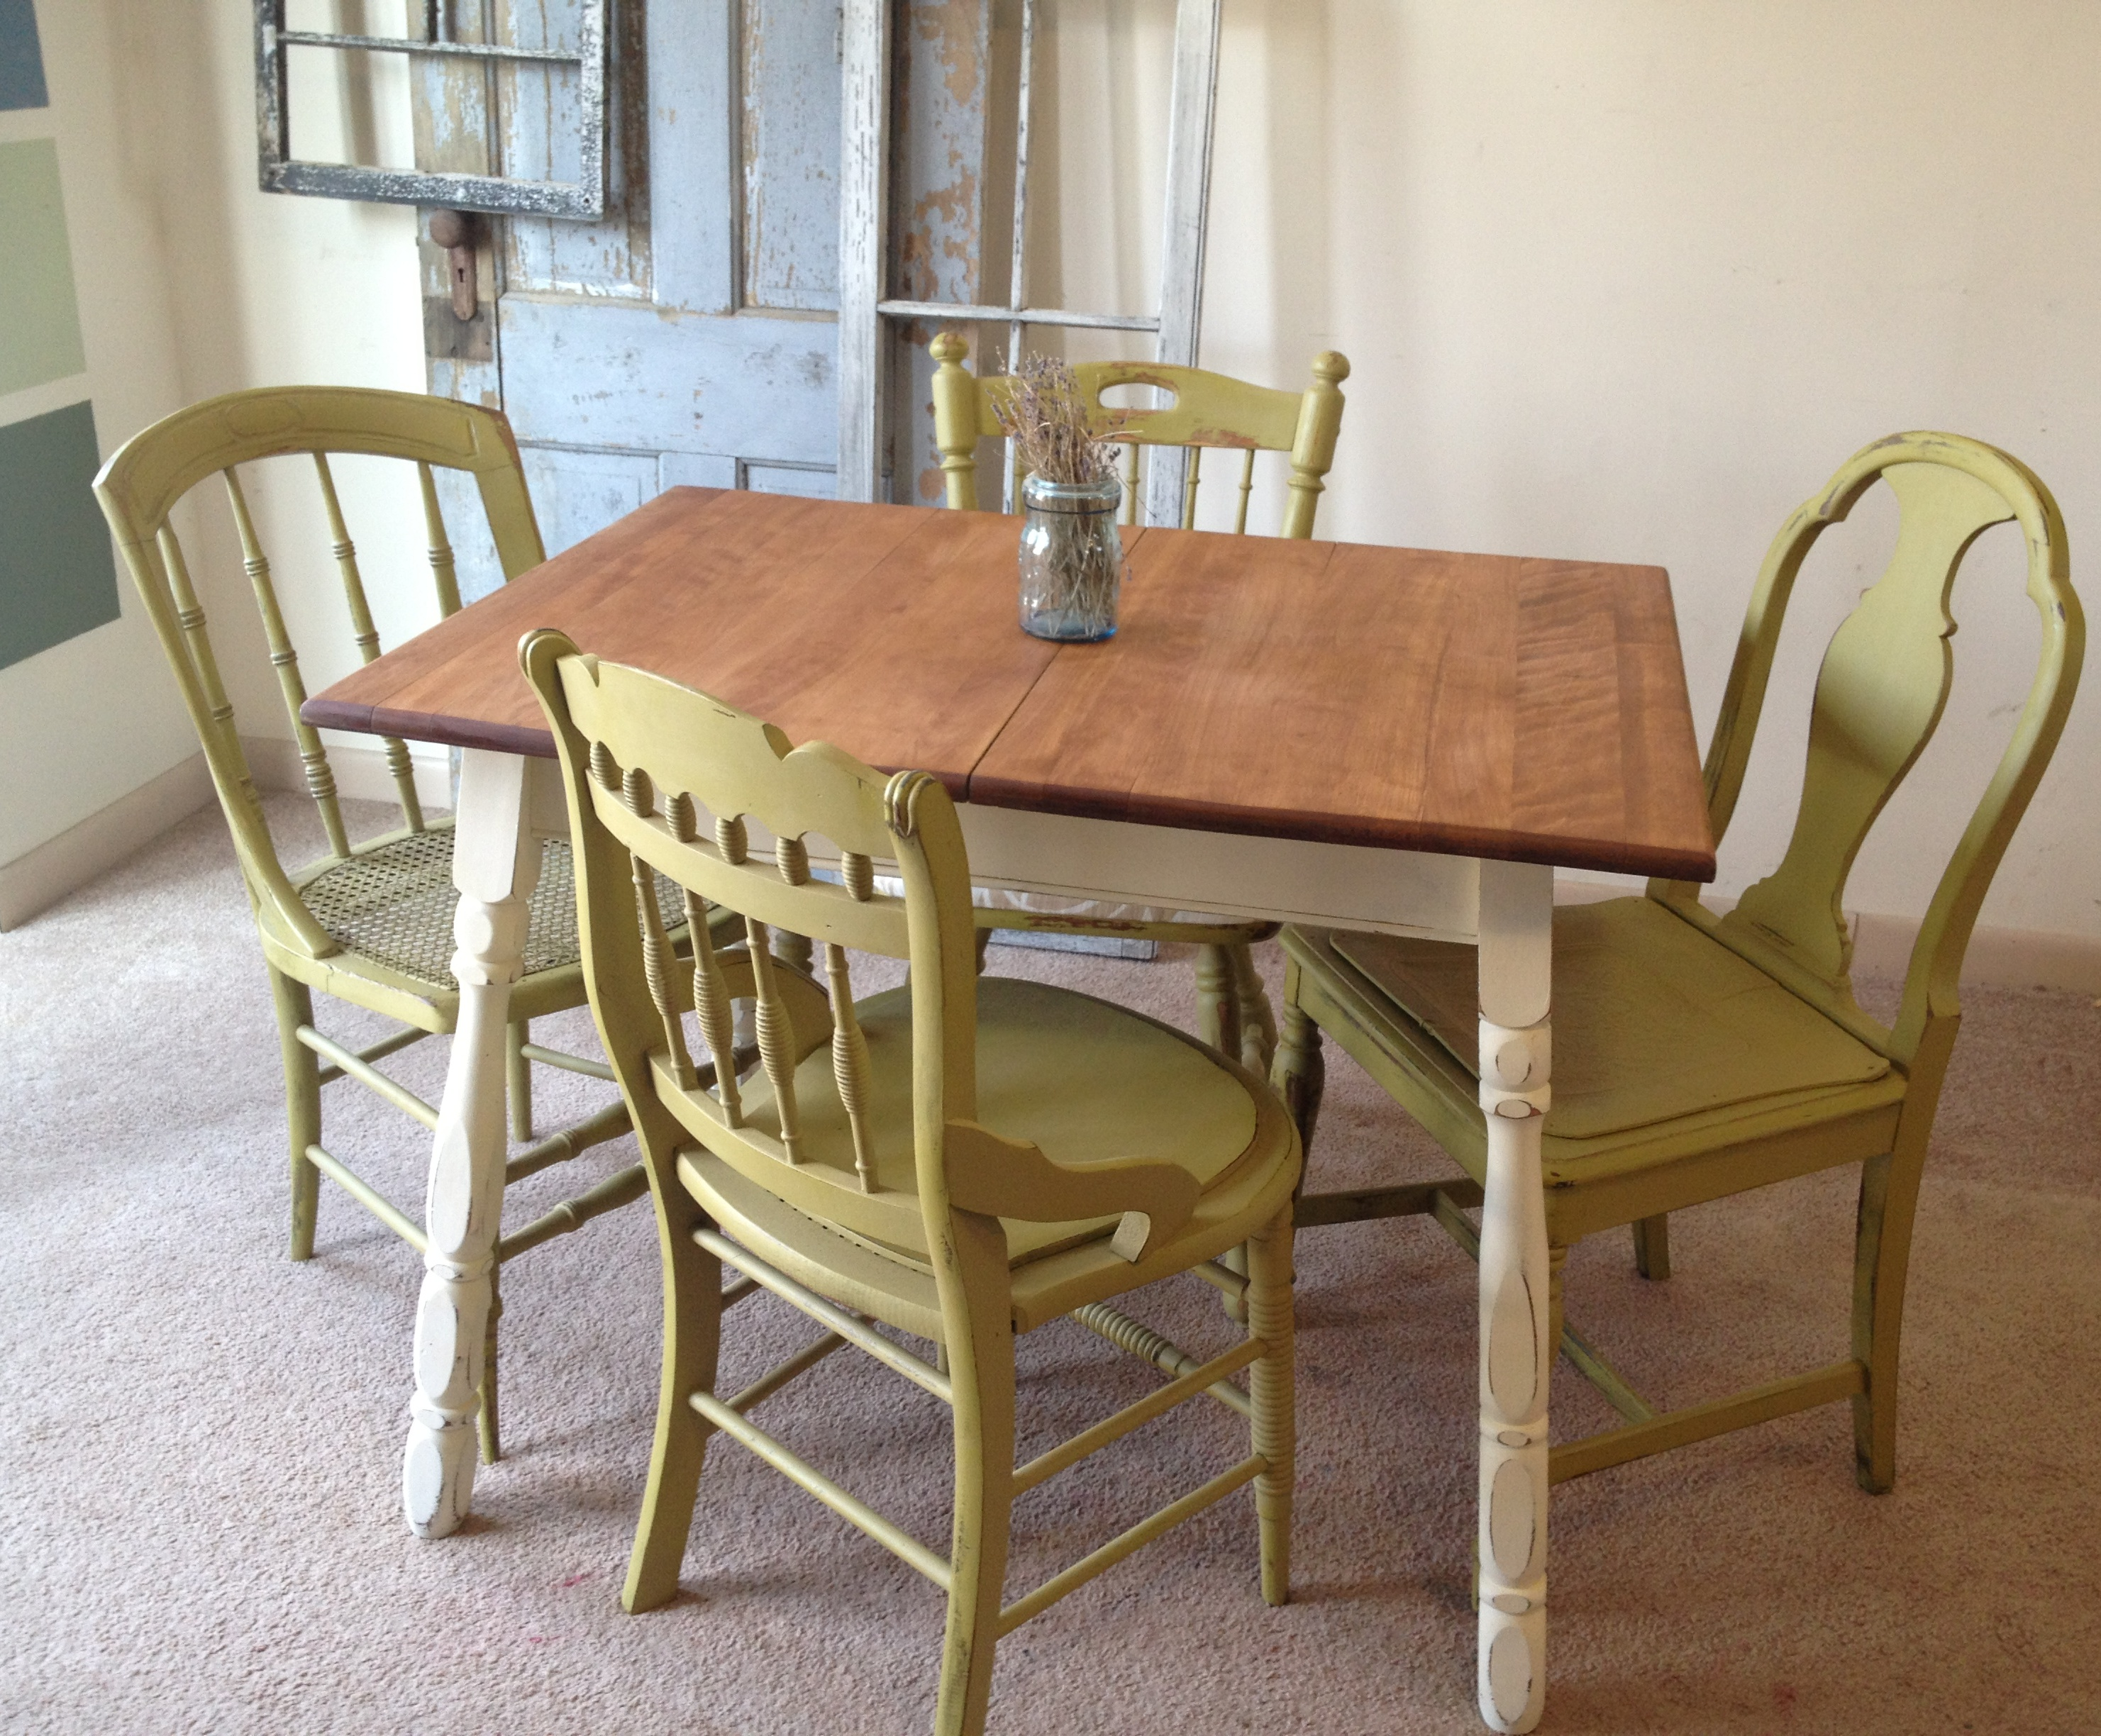 french country kitchen tables and chairs country kitchen tables french country kitchen tables and chairs photo 3